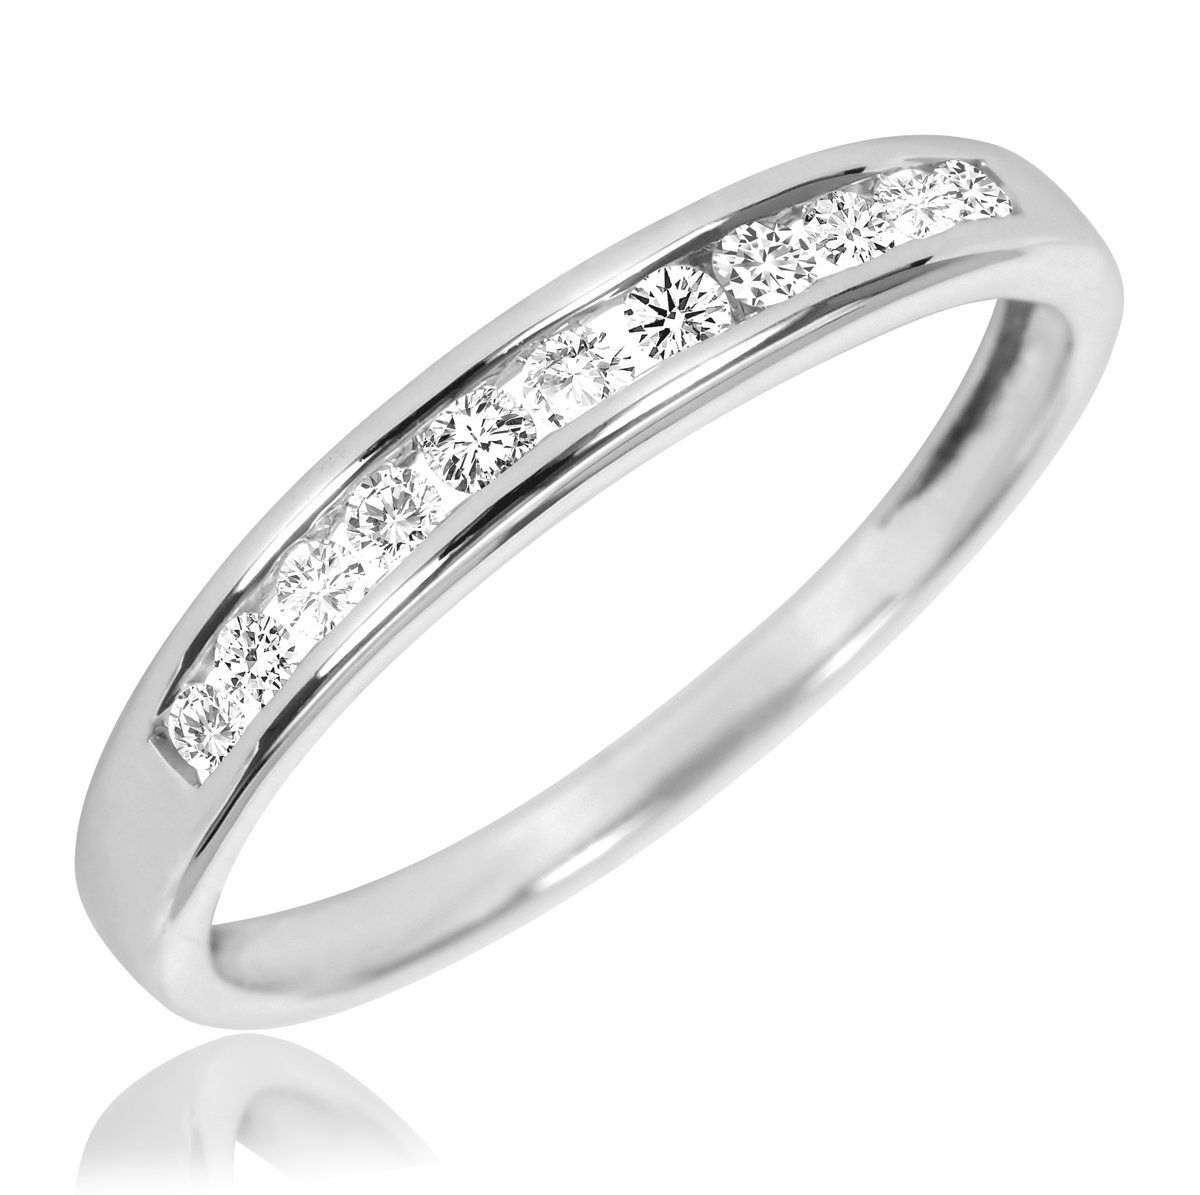 ladies 18k white gold diamonds eternity wedding band ring white gold wedding band Ladies 18k White Gold Diamonds Eternity Wedding Band Ring Home Wedding Bands Ladies 18k White Gold Diamonds Eternity Wedding Band Ring